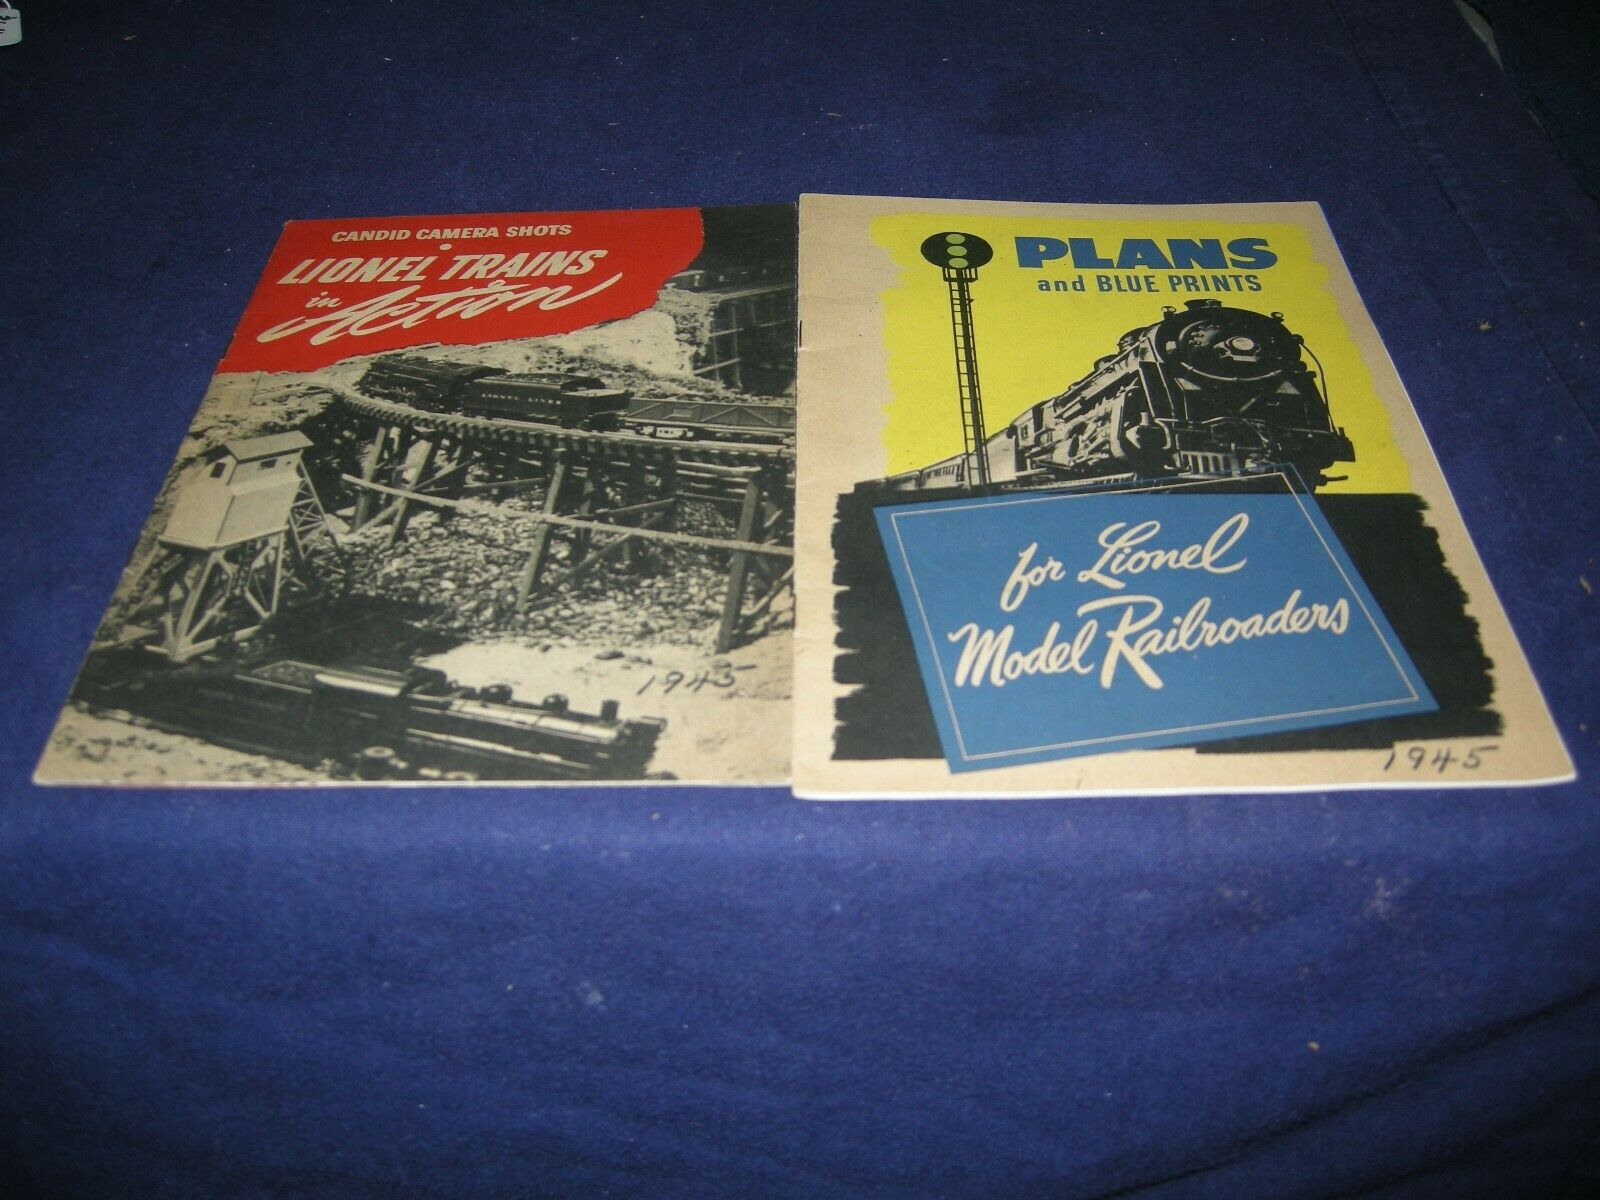 LIONEL PLANS AND LAYOUT PICTURES 1945 AS SHOWN